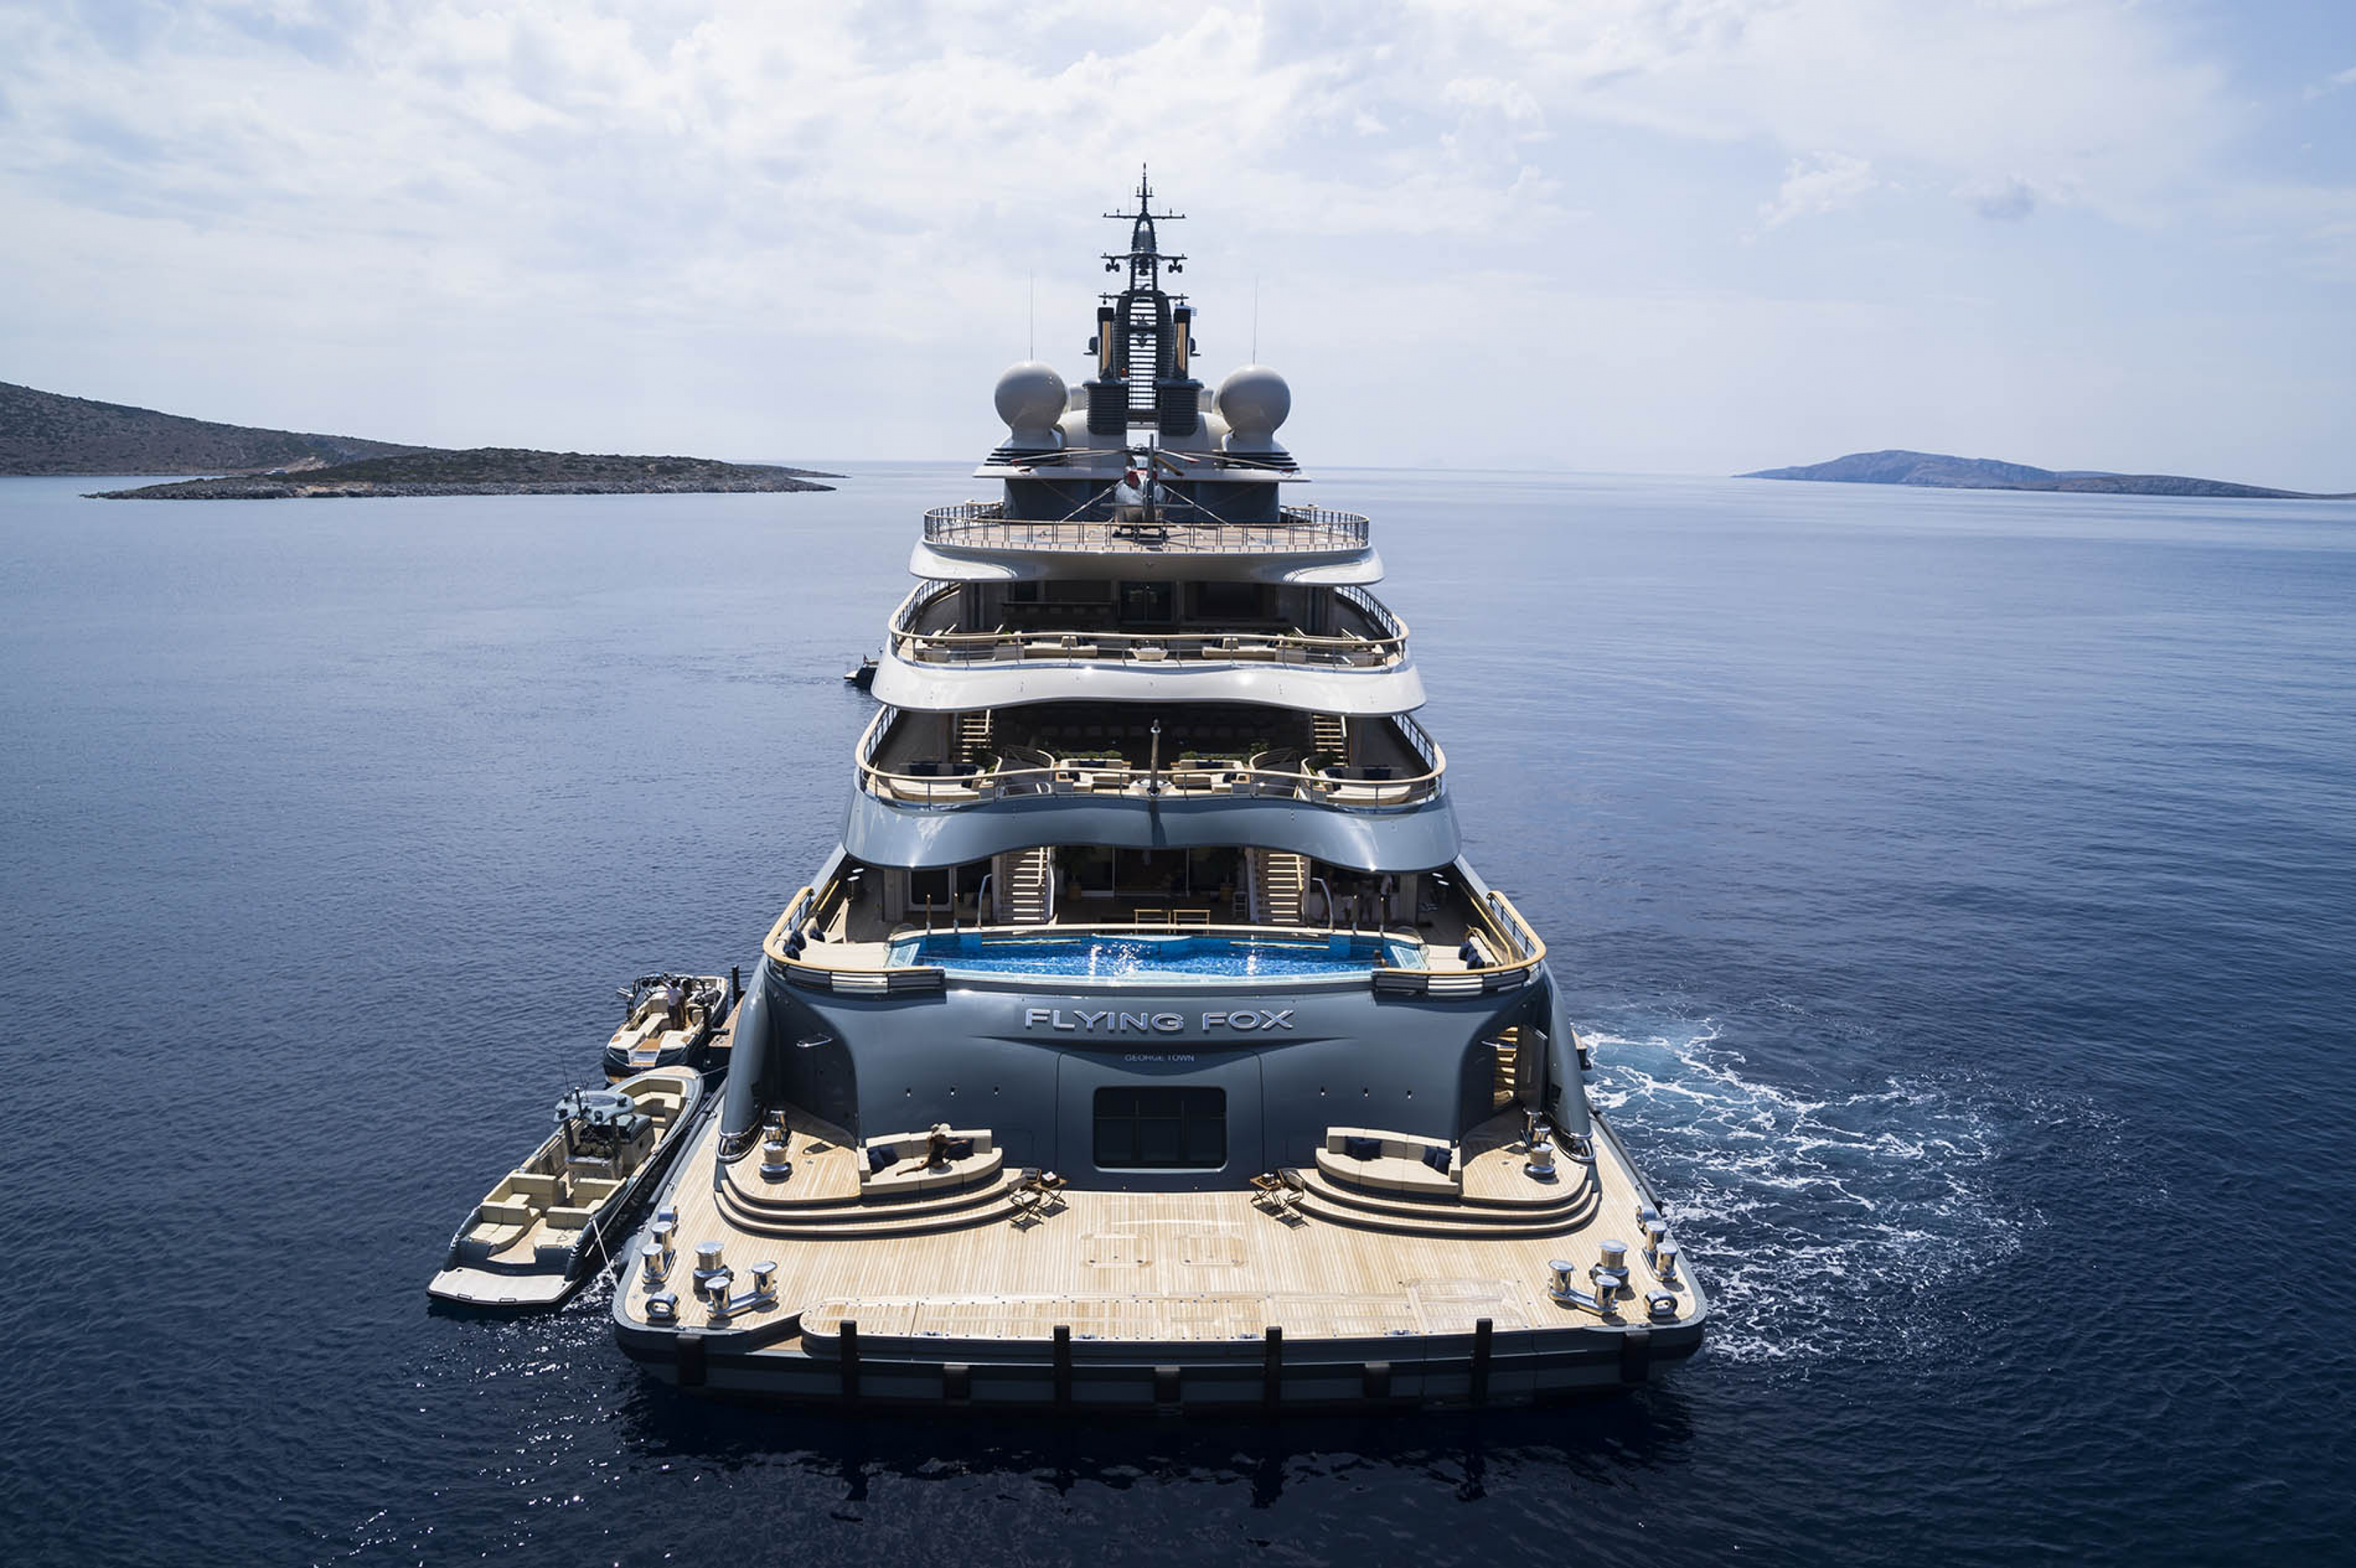 WORLD SUPERYACHT AWARDS 2020: FLYING FOX WINS !